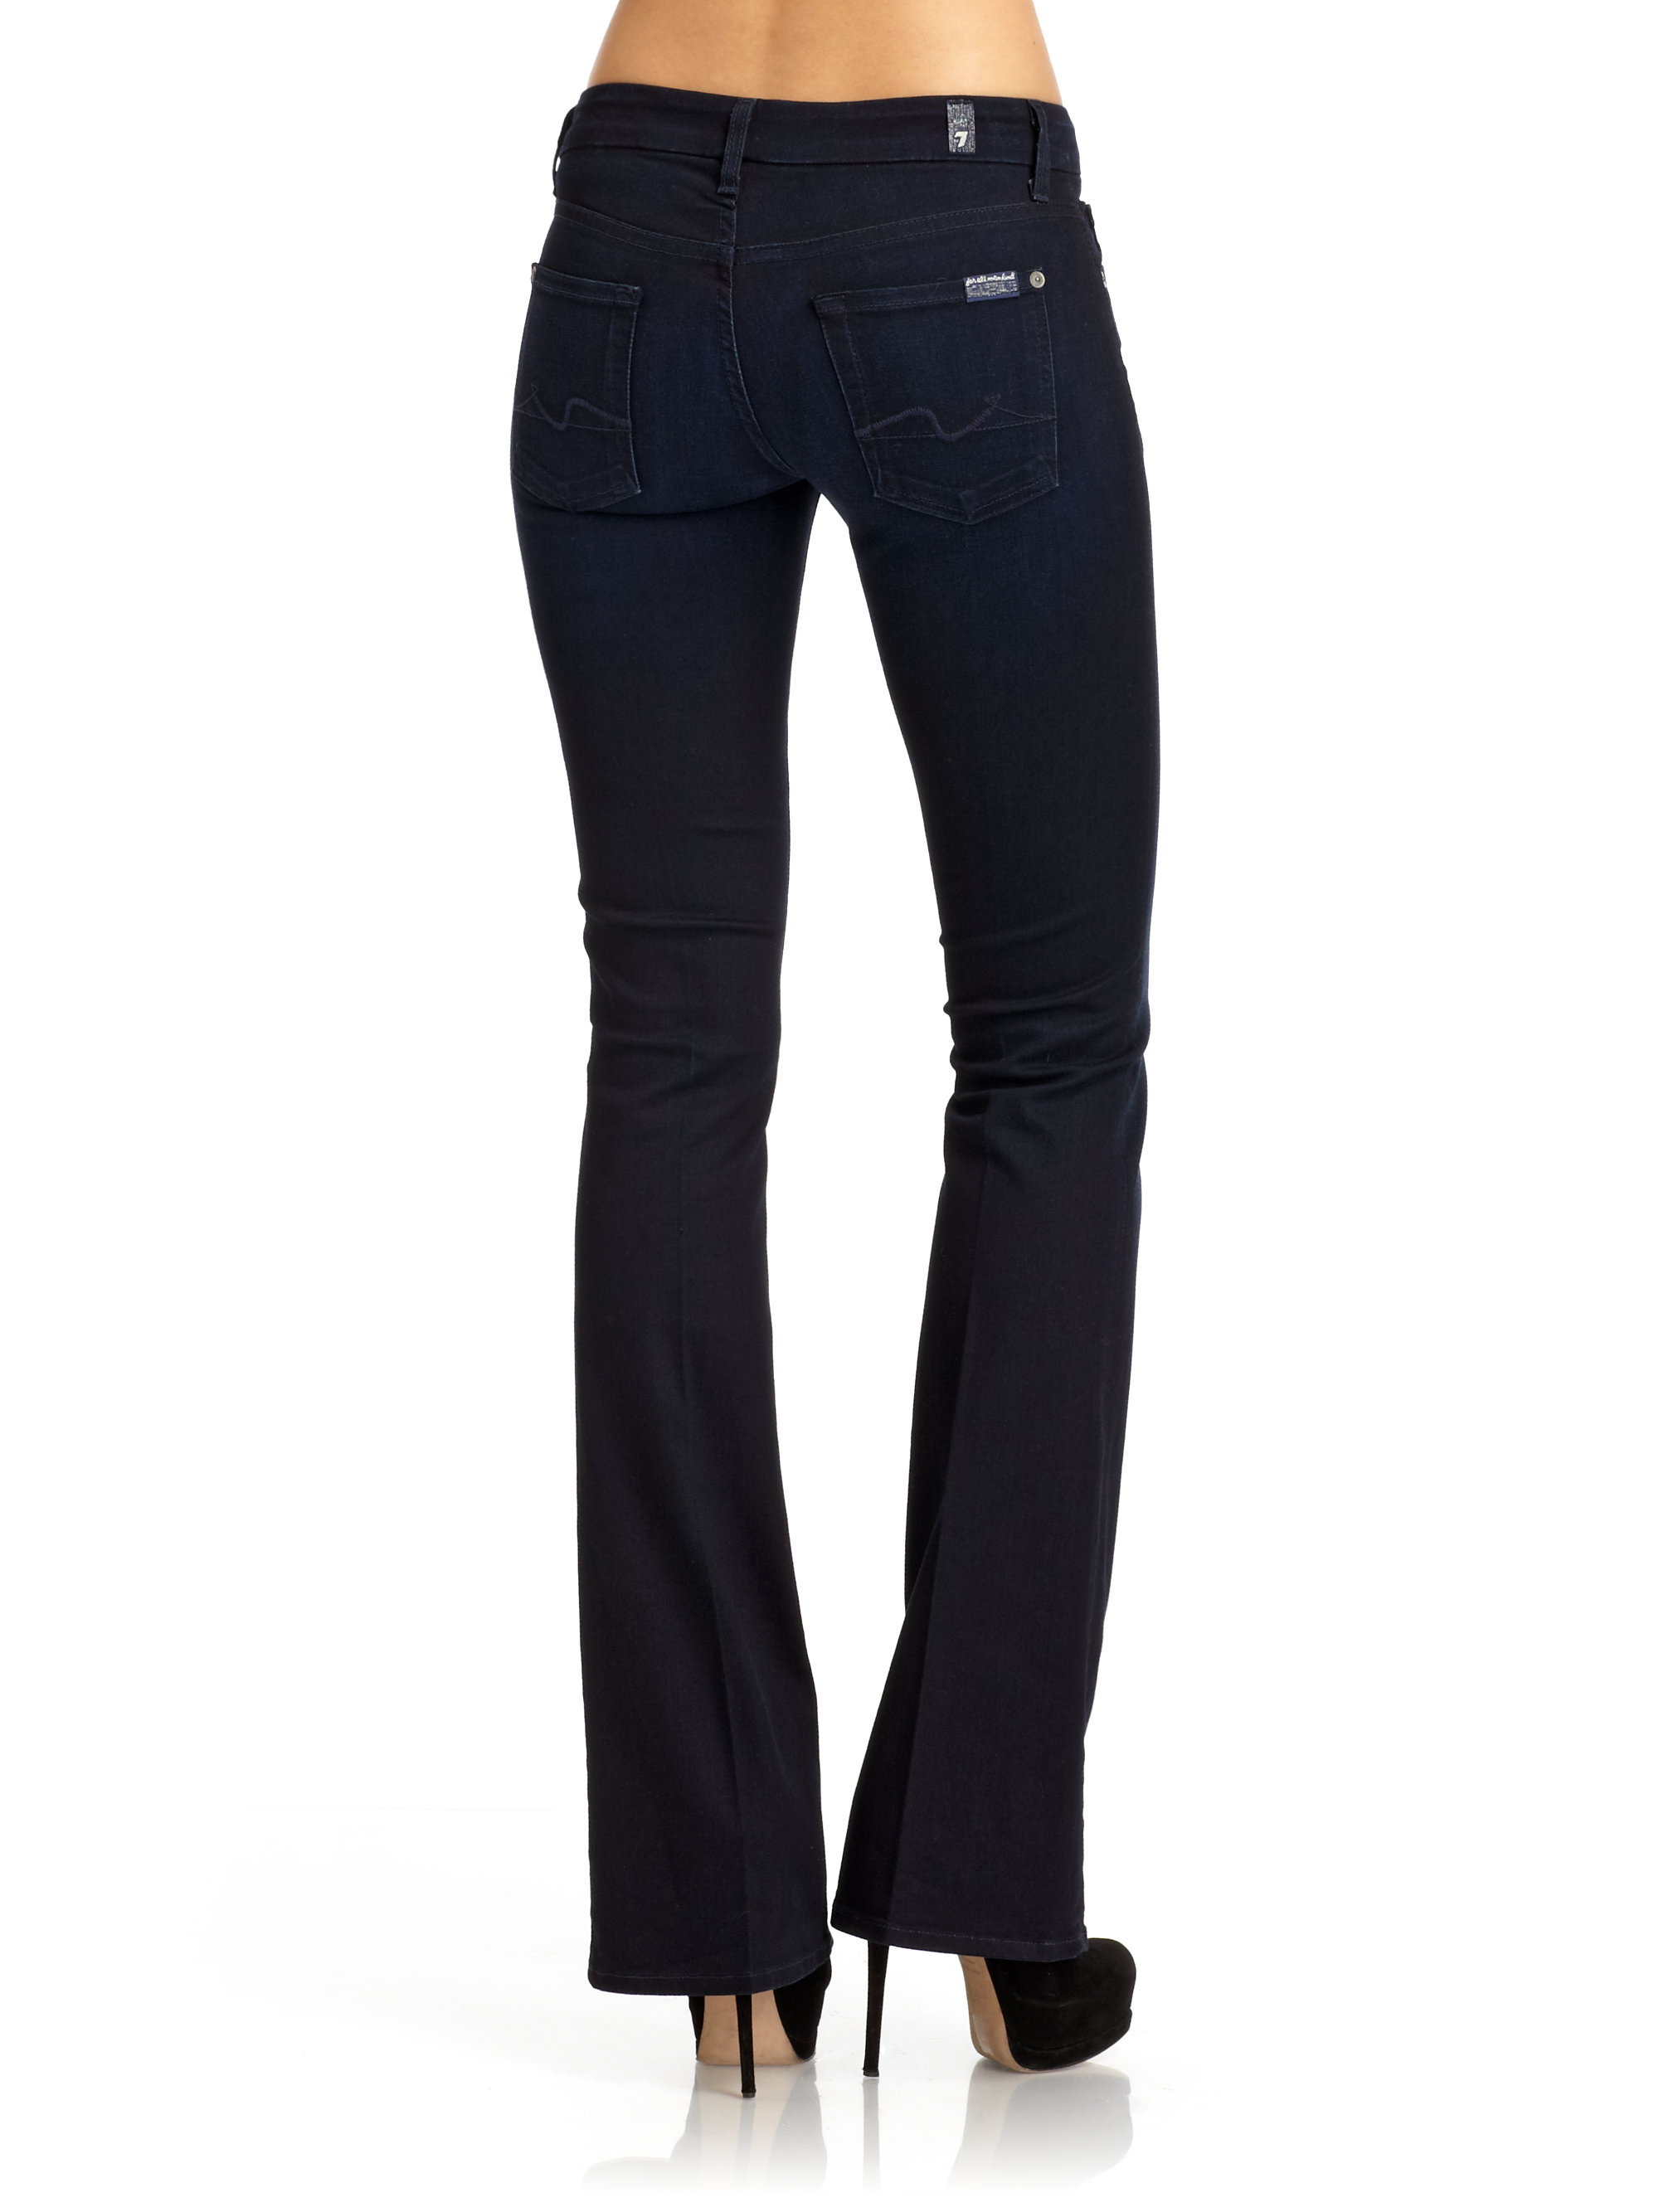 7 kimmie bootcut jeans